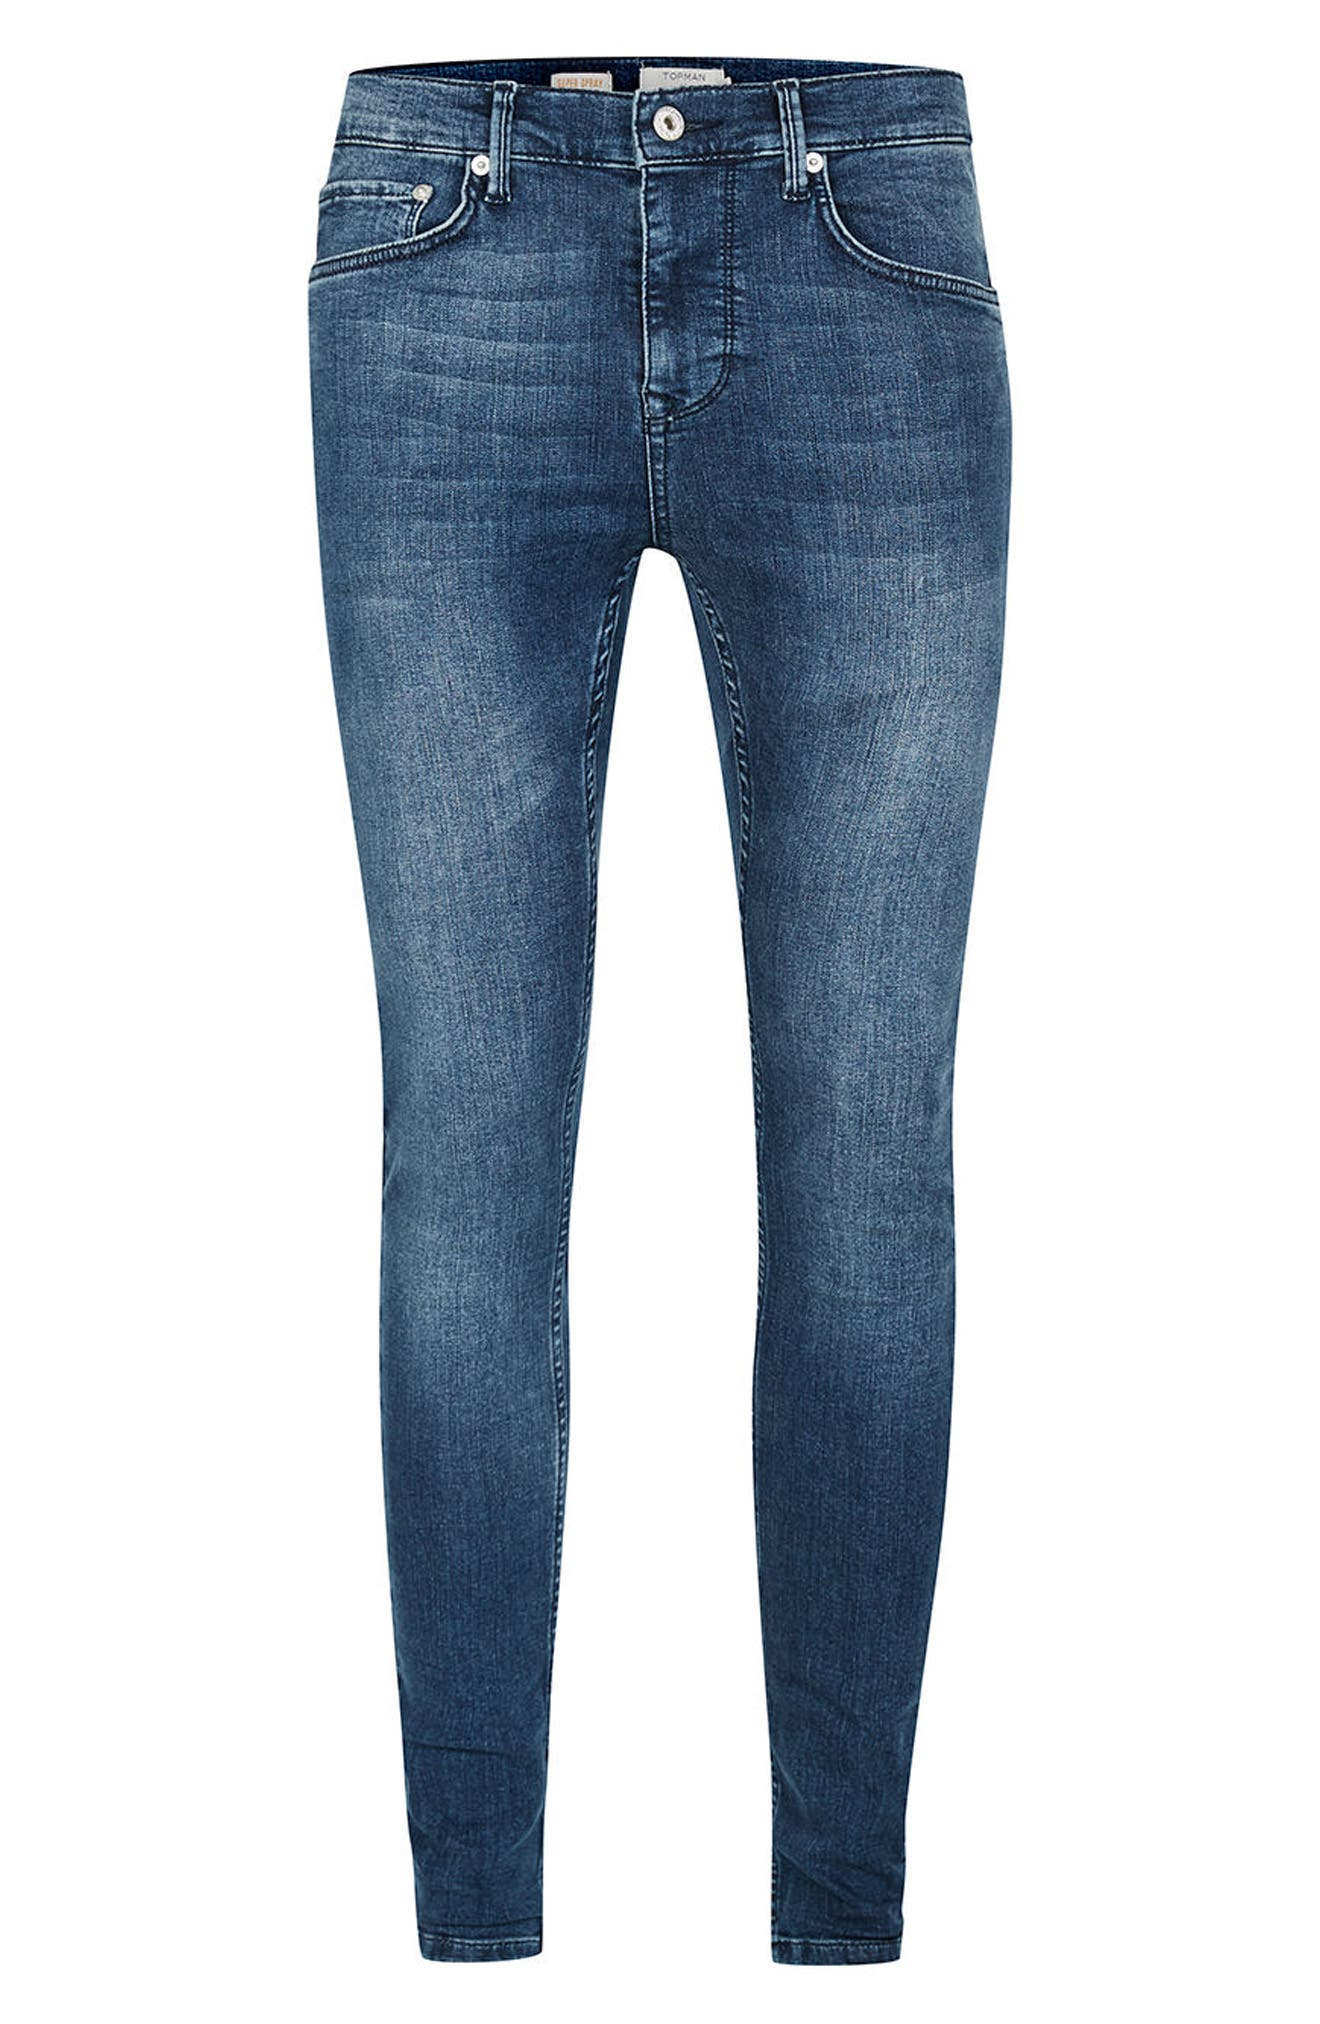 Super Spray On Skinny Fit Jeans,                             Alternate thumbnail 4, color,                             400